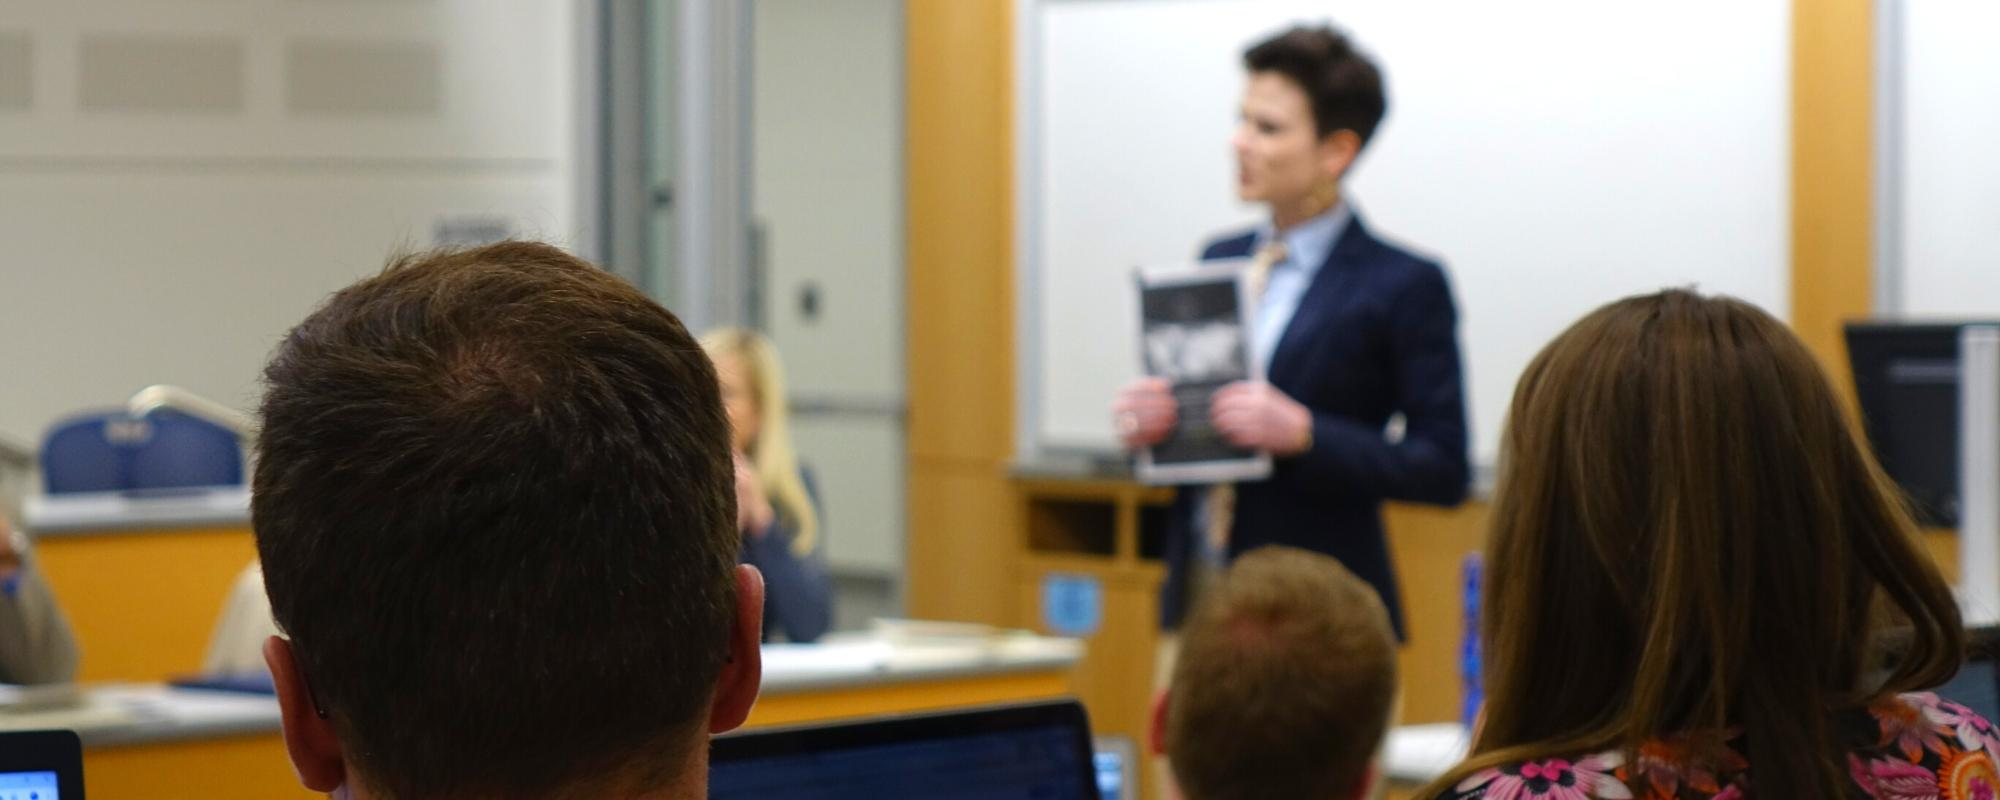 An instructor discusses the 2019 Worldwide Threat Assessment with Center for Anticipatory Intelligence students.